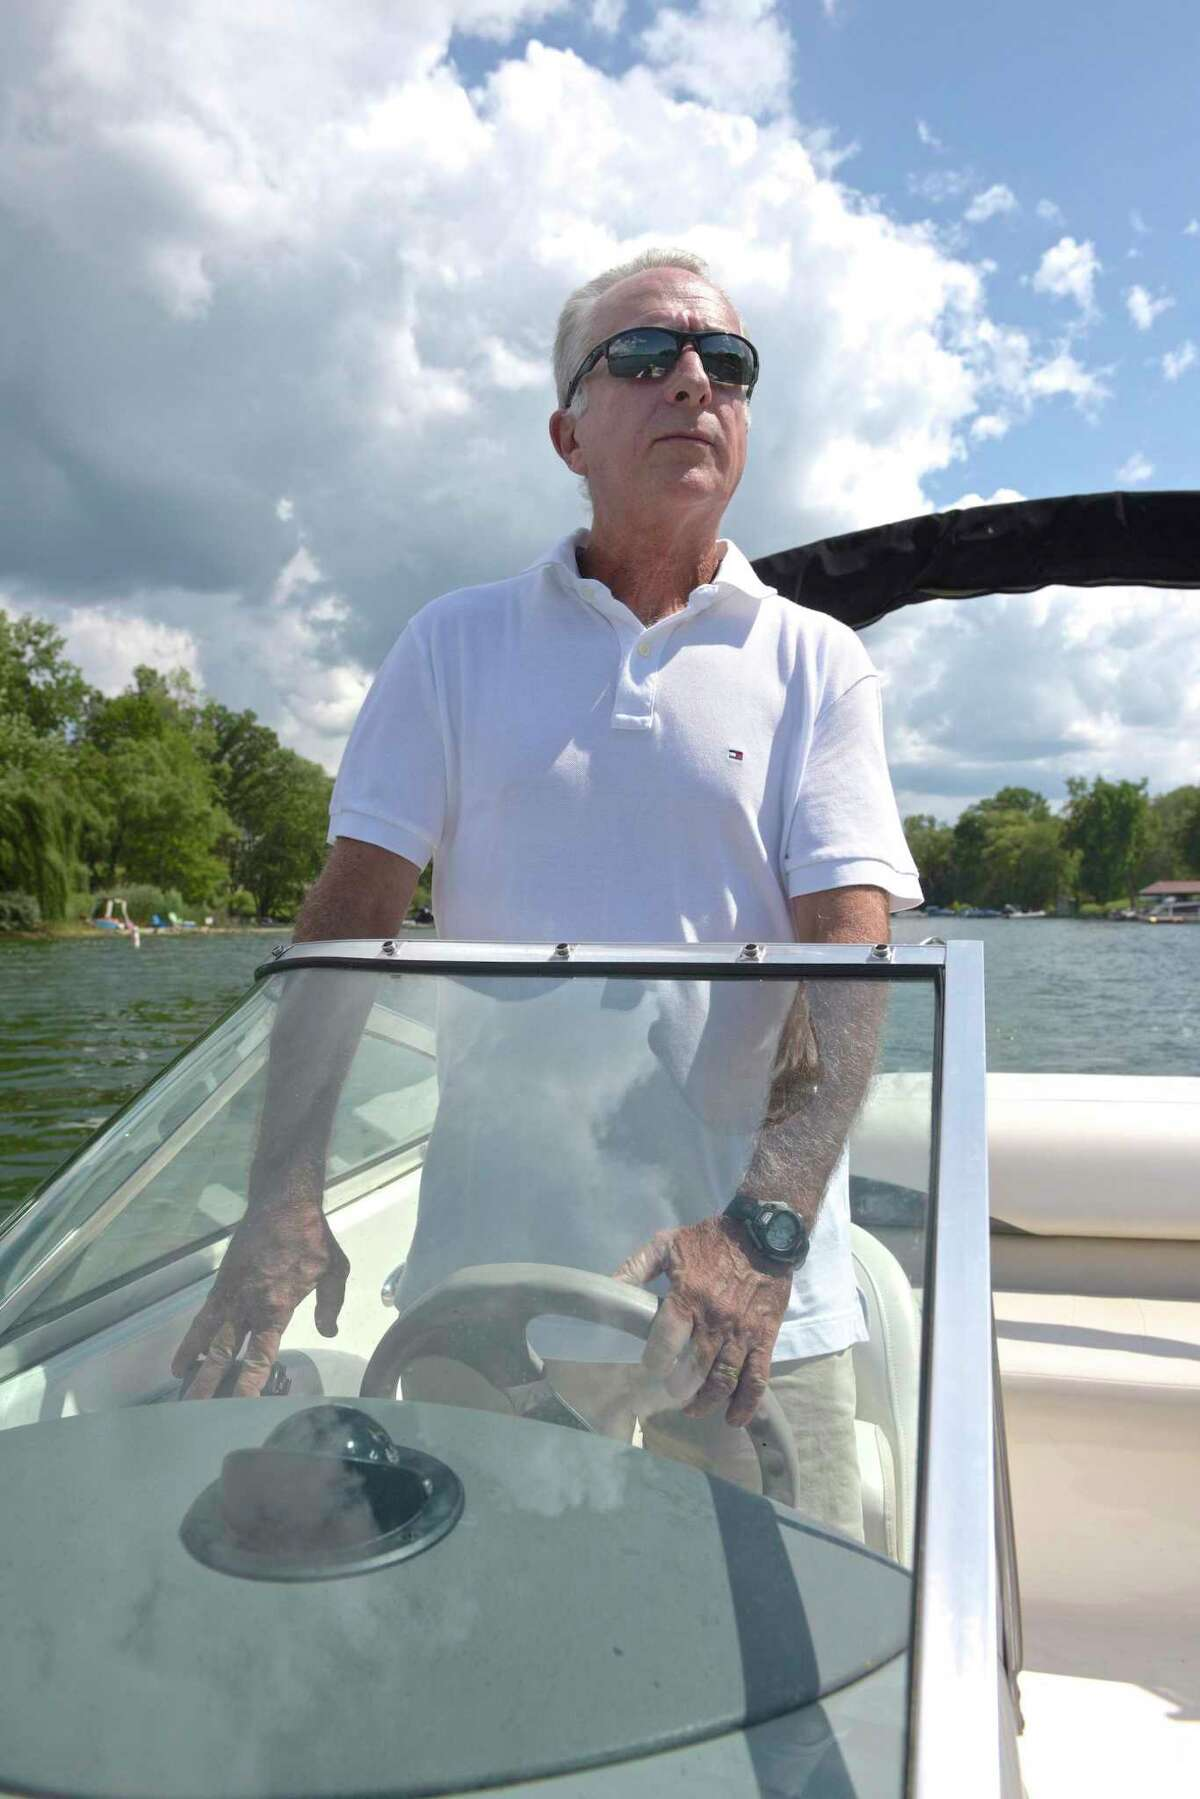 Jim Murray, a board member of the Water Pollution and Control Authority looks at housing on Candlewood Lake in Brookfield. The town has received two grants one of which is to study septic discharges onto Candlewood Lake. Wednesday, July 24, 2019, in Brookfield, Conn.